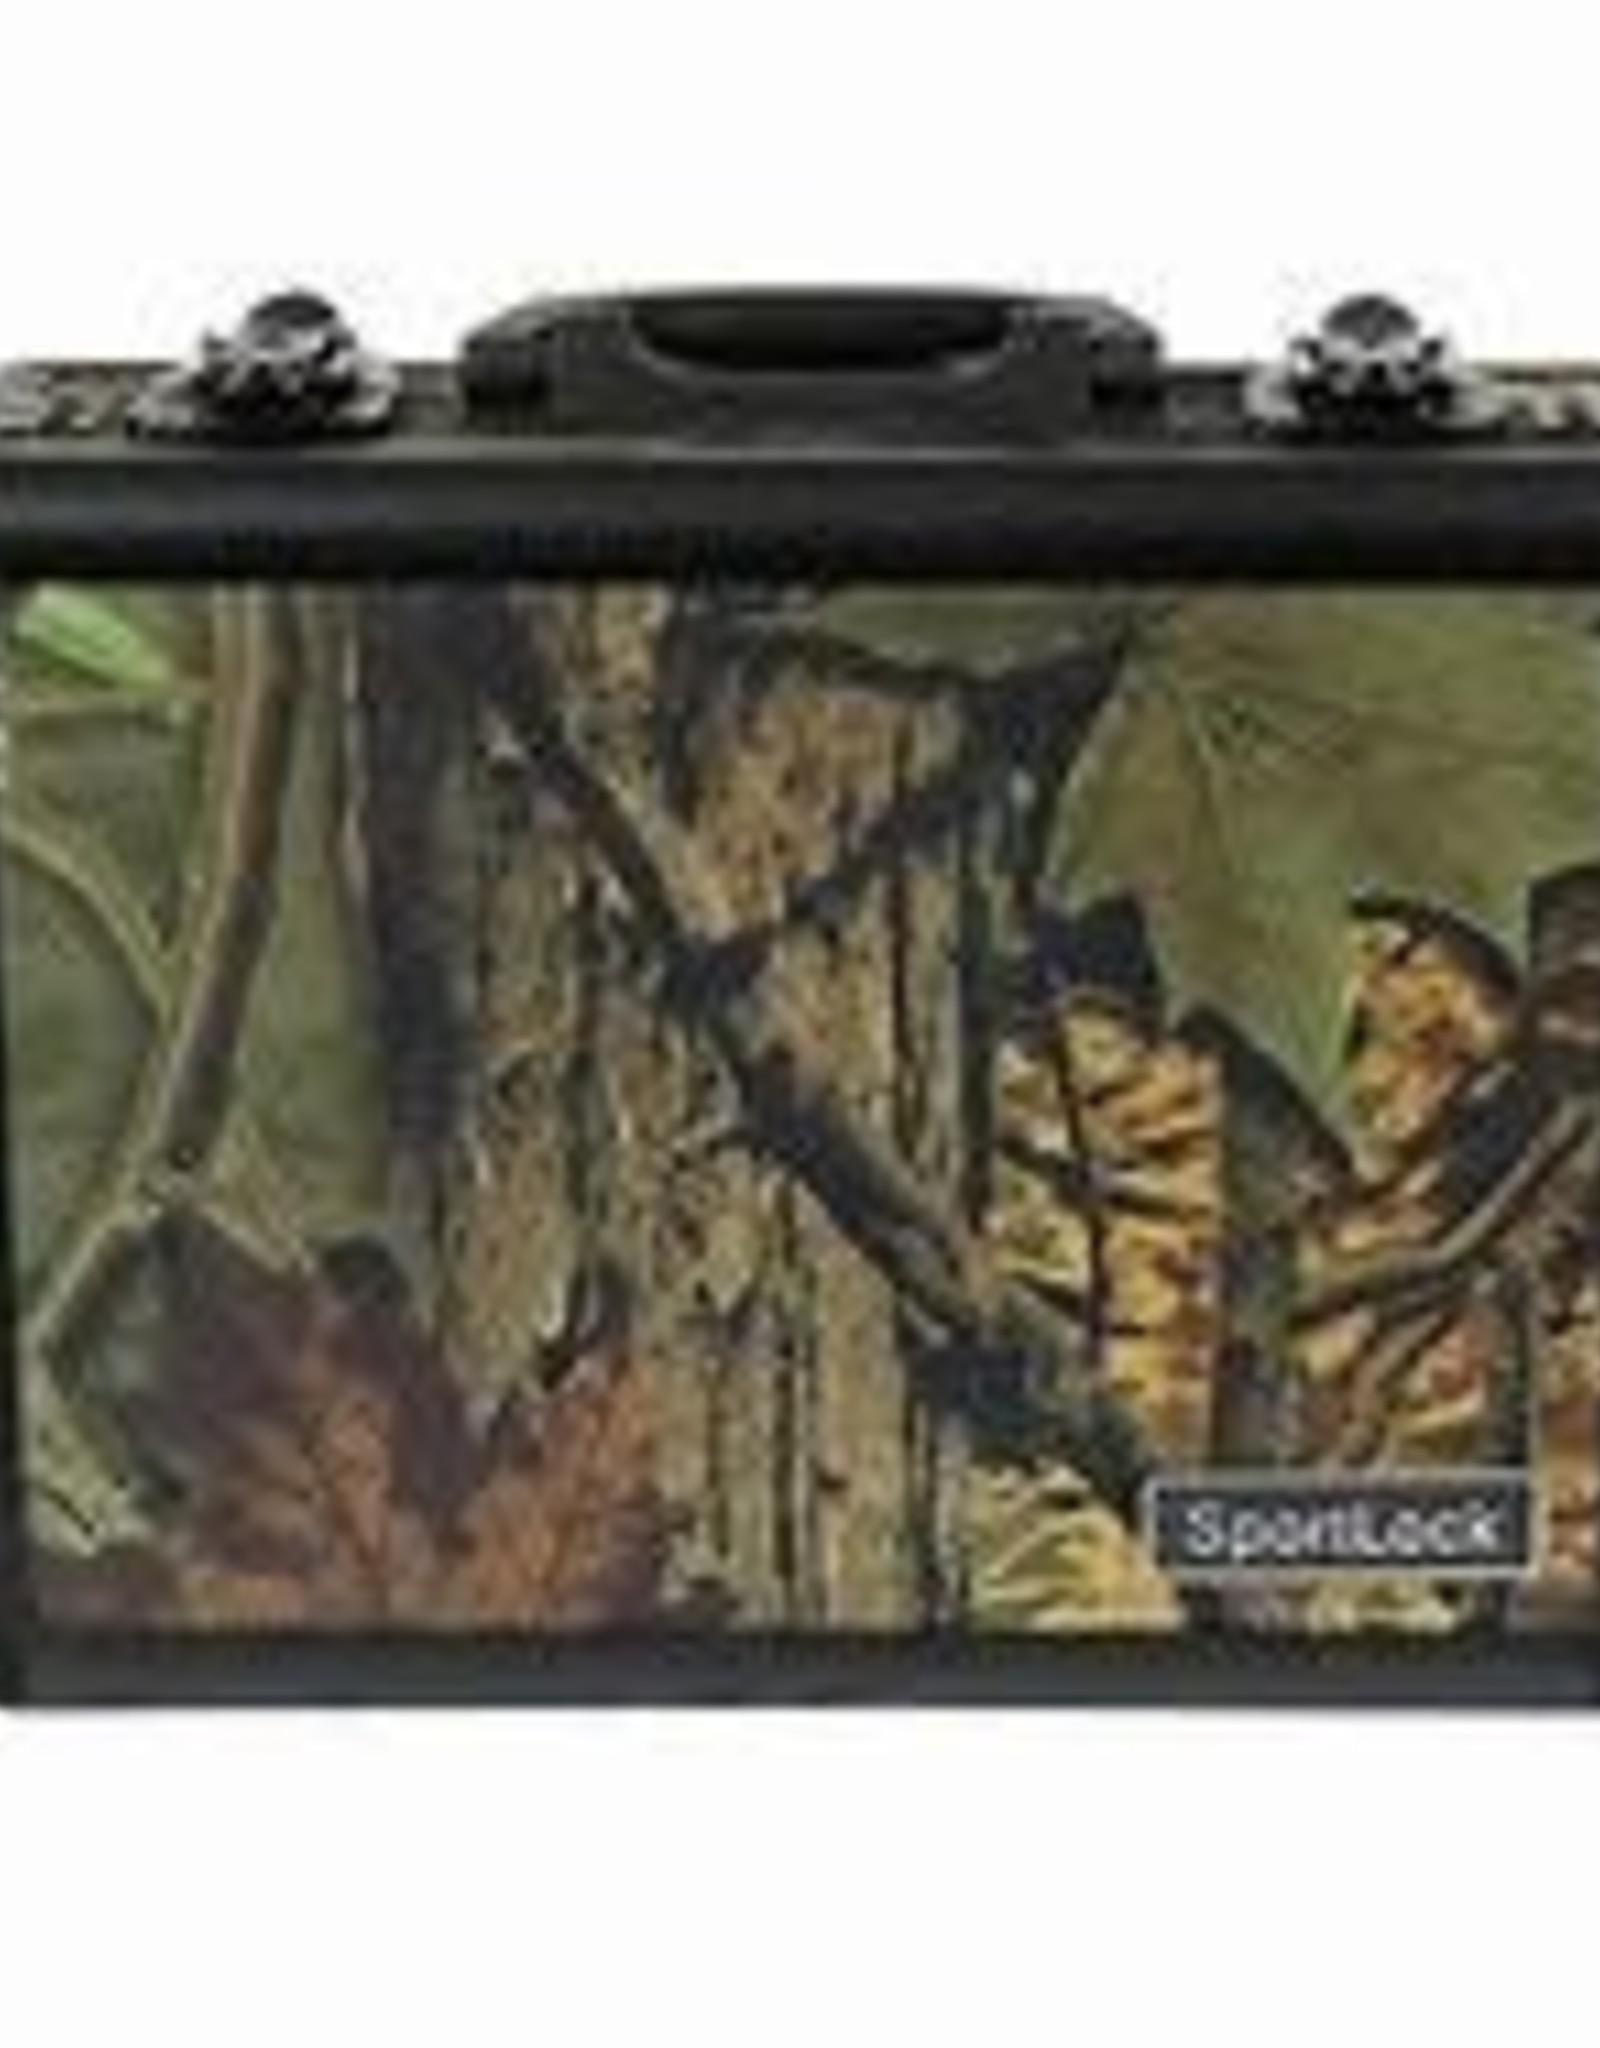 Birchwood Casey AlumaLock Double Handgun Case